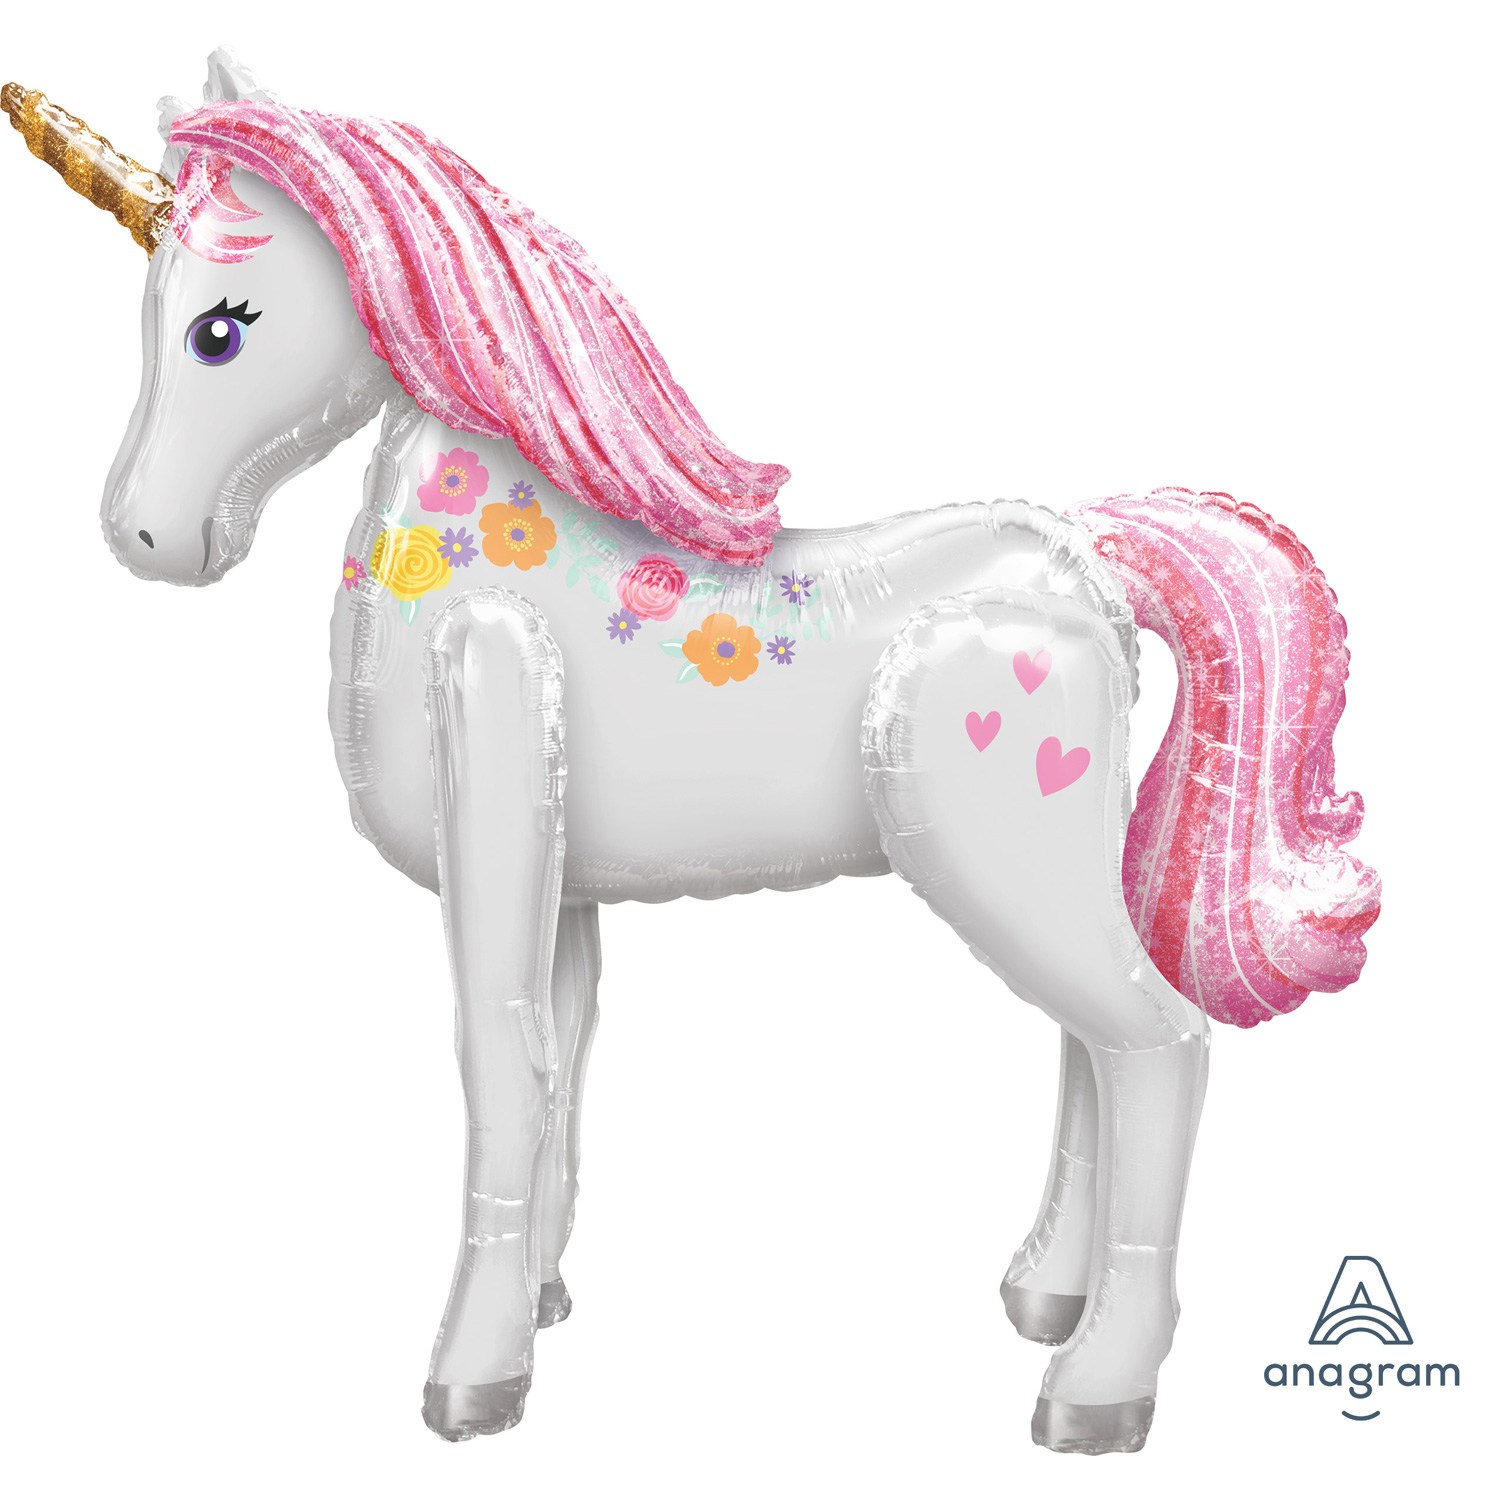 Magical Unicorn Airwalker Balloon